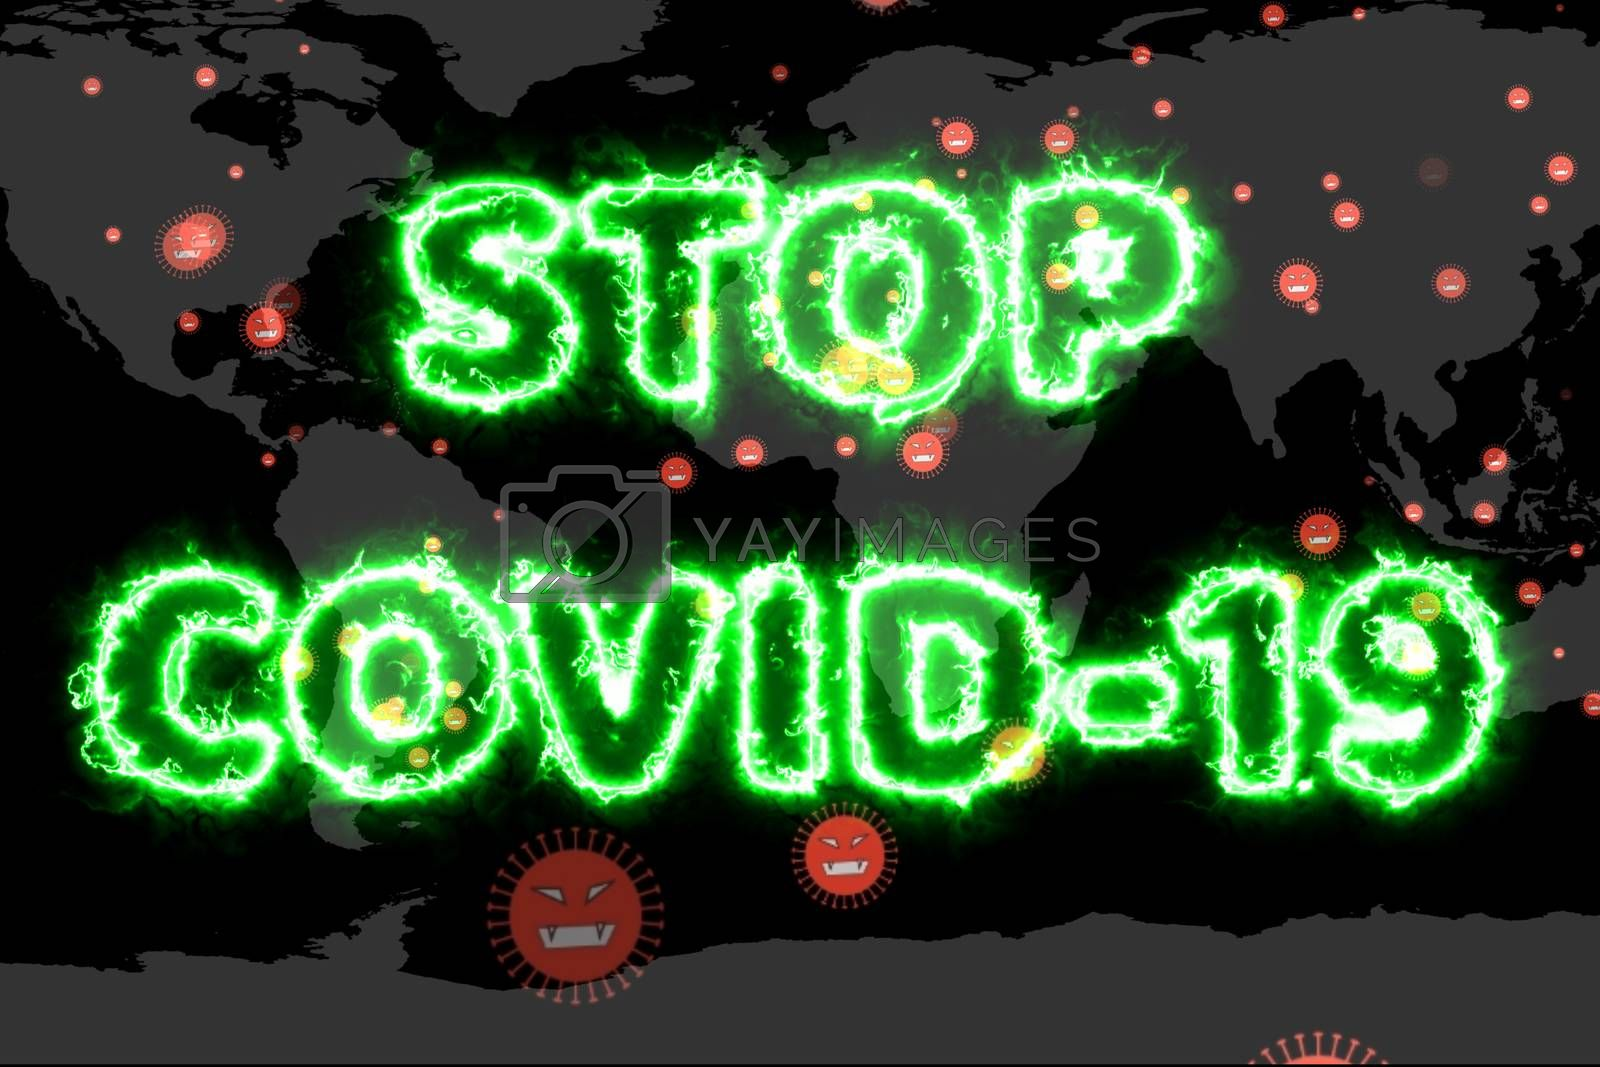 Covid 19 virus has spread all over the world and stop covid-19 green text